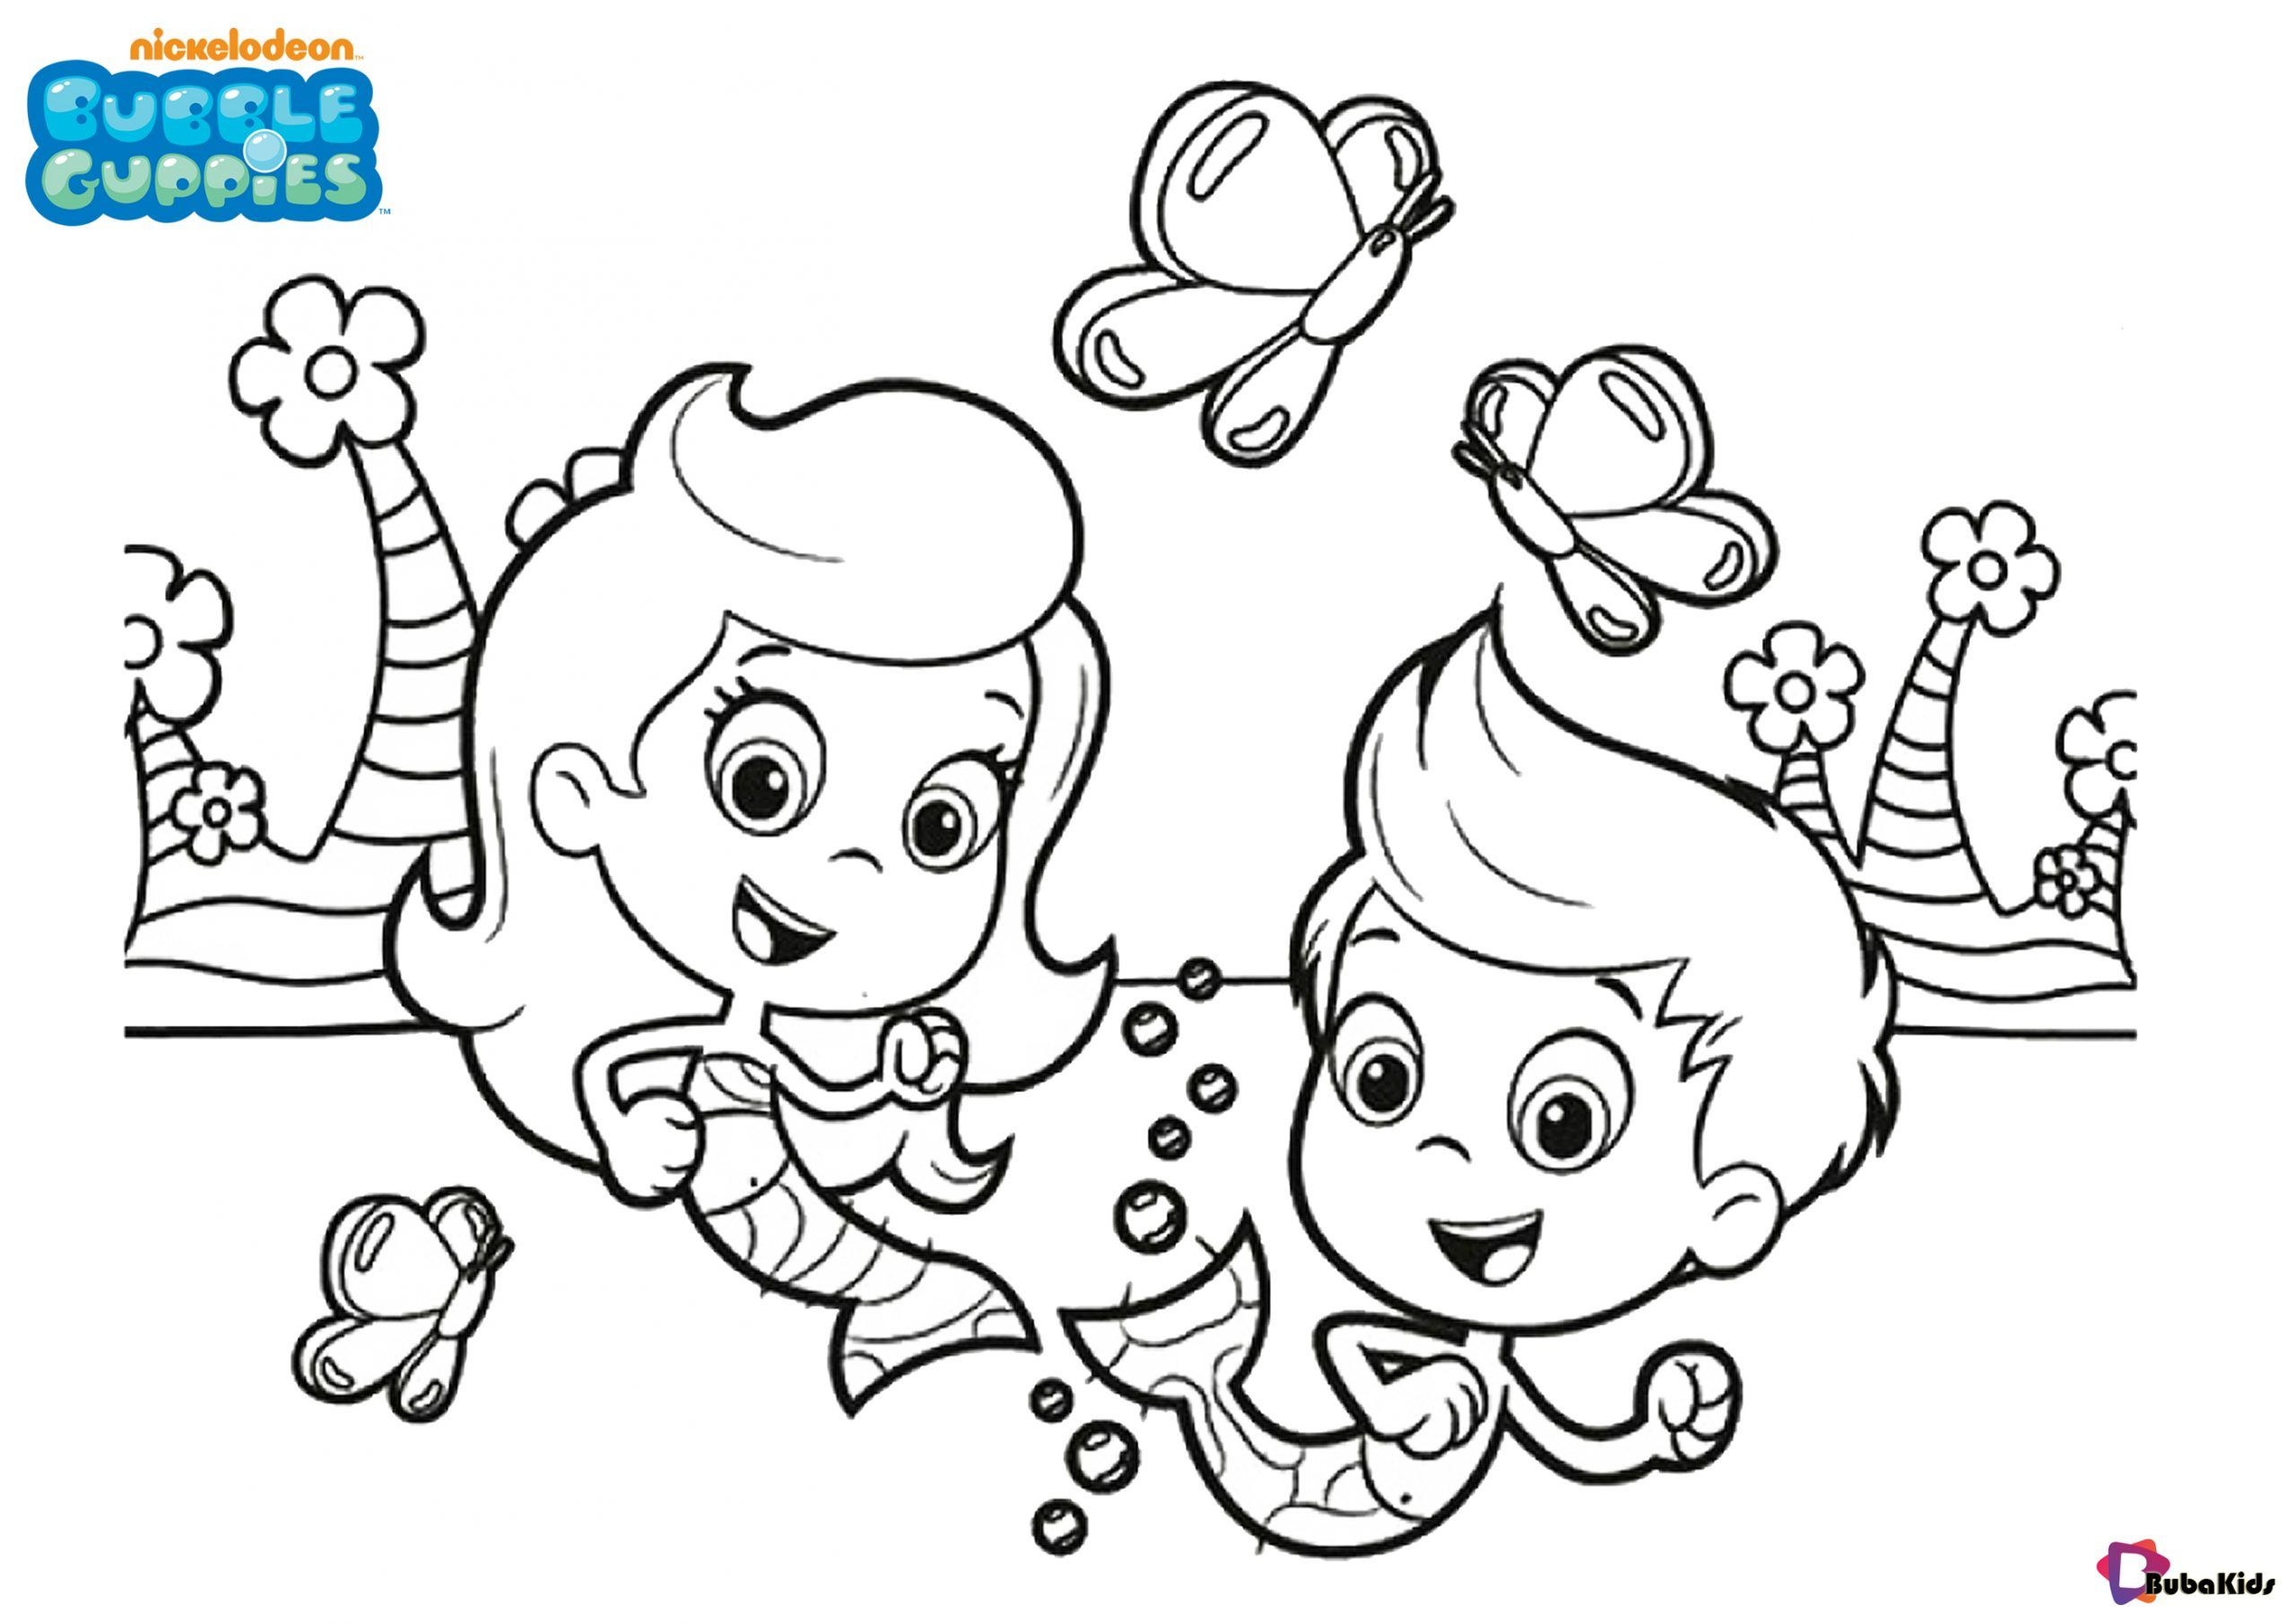 Easy And Printable Bubble Guppies Colouring Pages For Kids Collection Of Cartoon Col Bubble Guppies Coloring Pages Cartoon Coloring Pages Puppy Coloring Pages